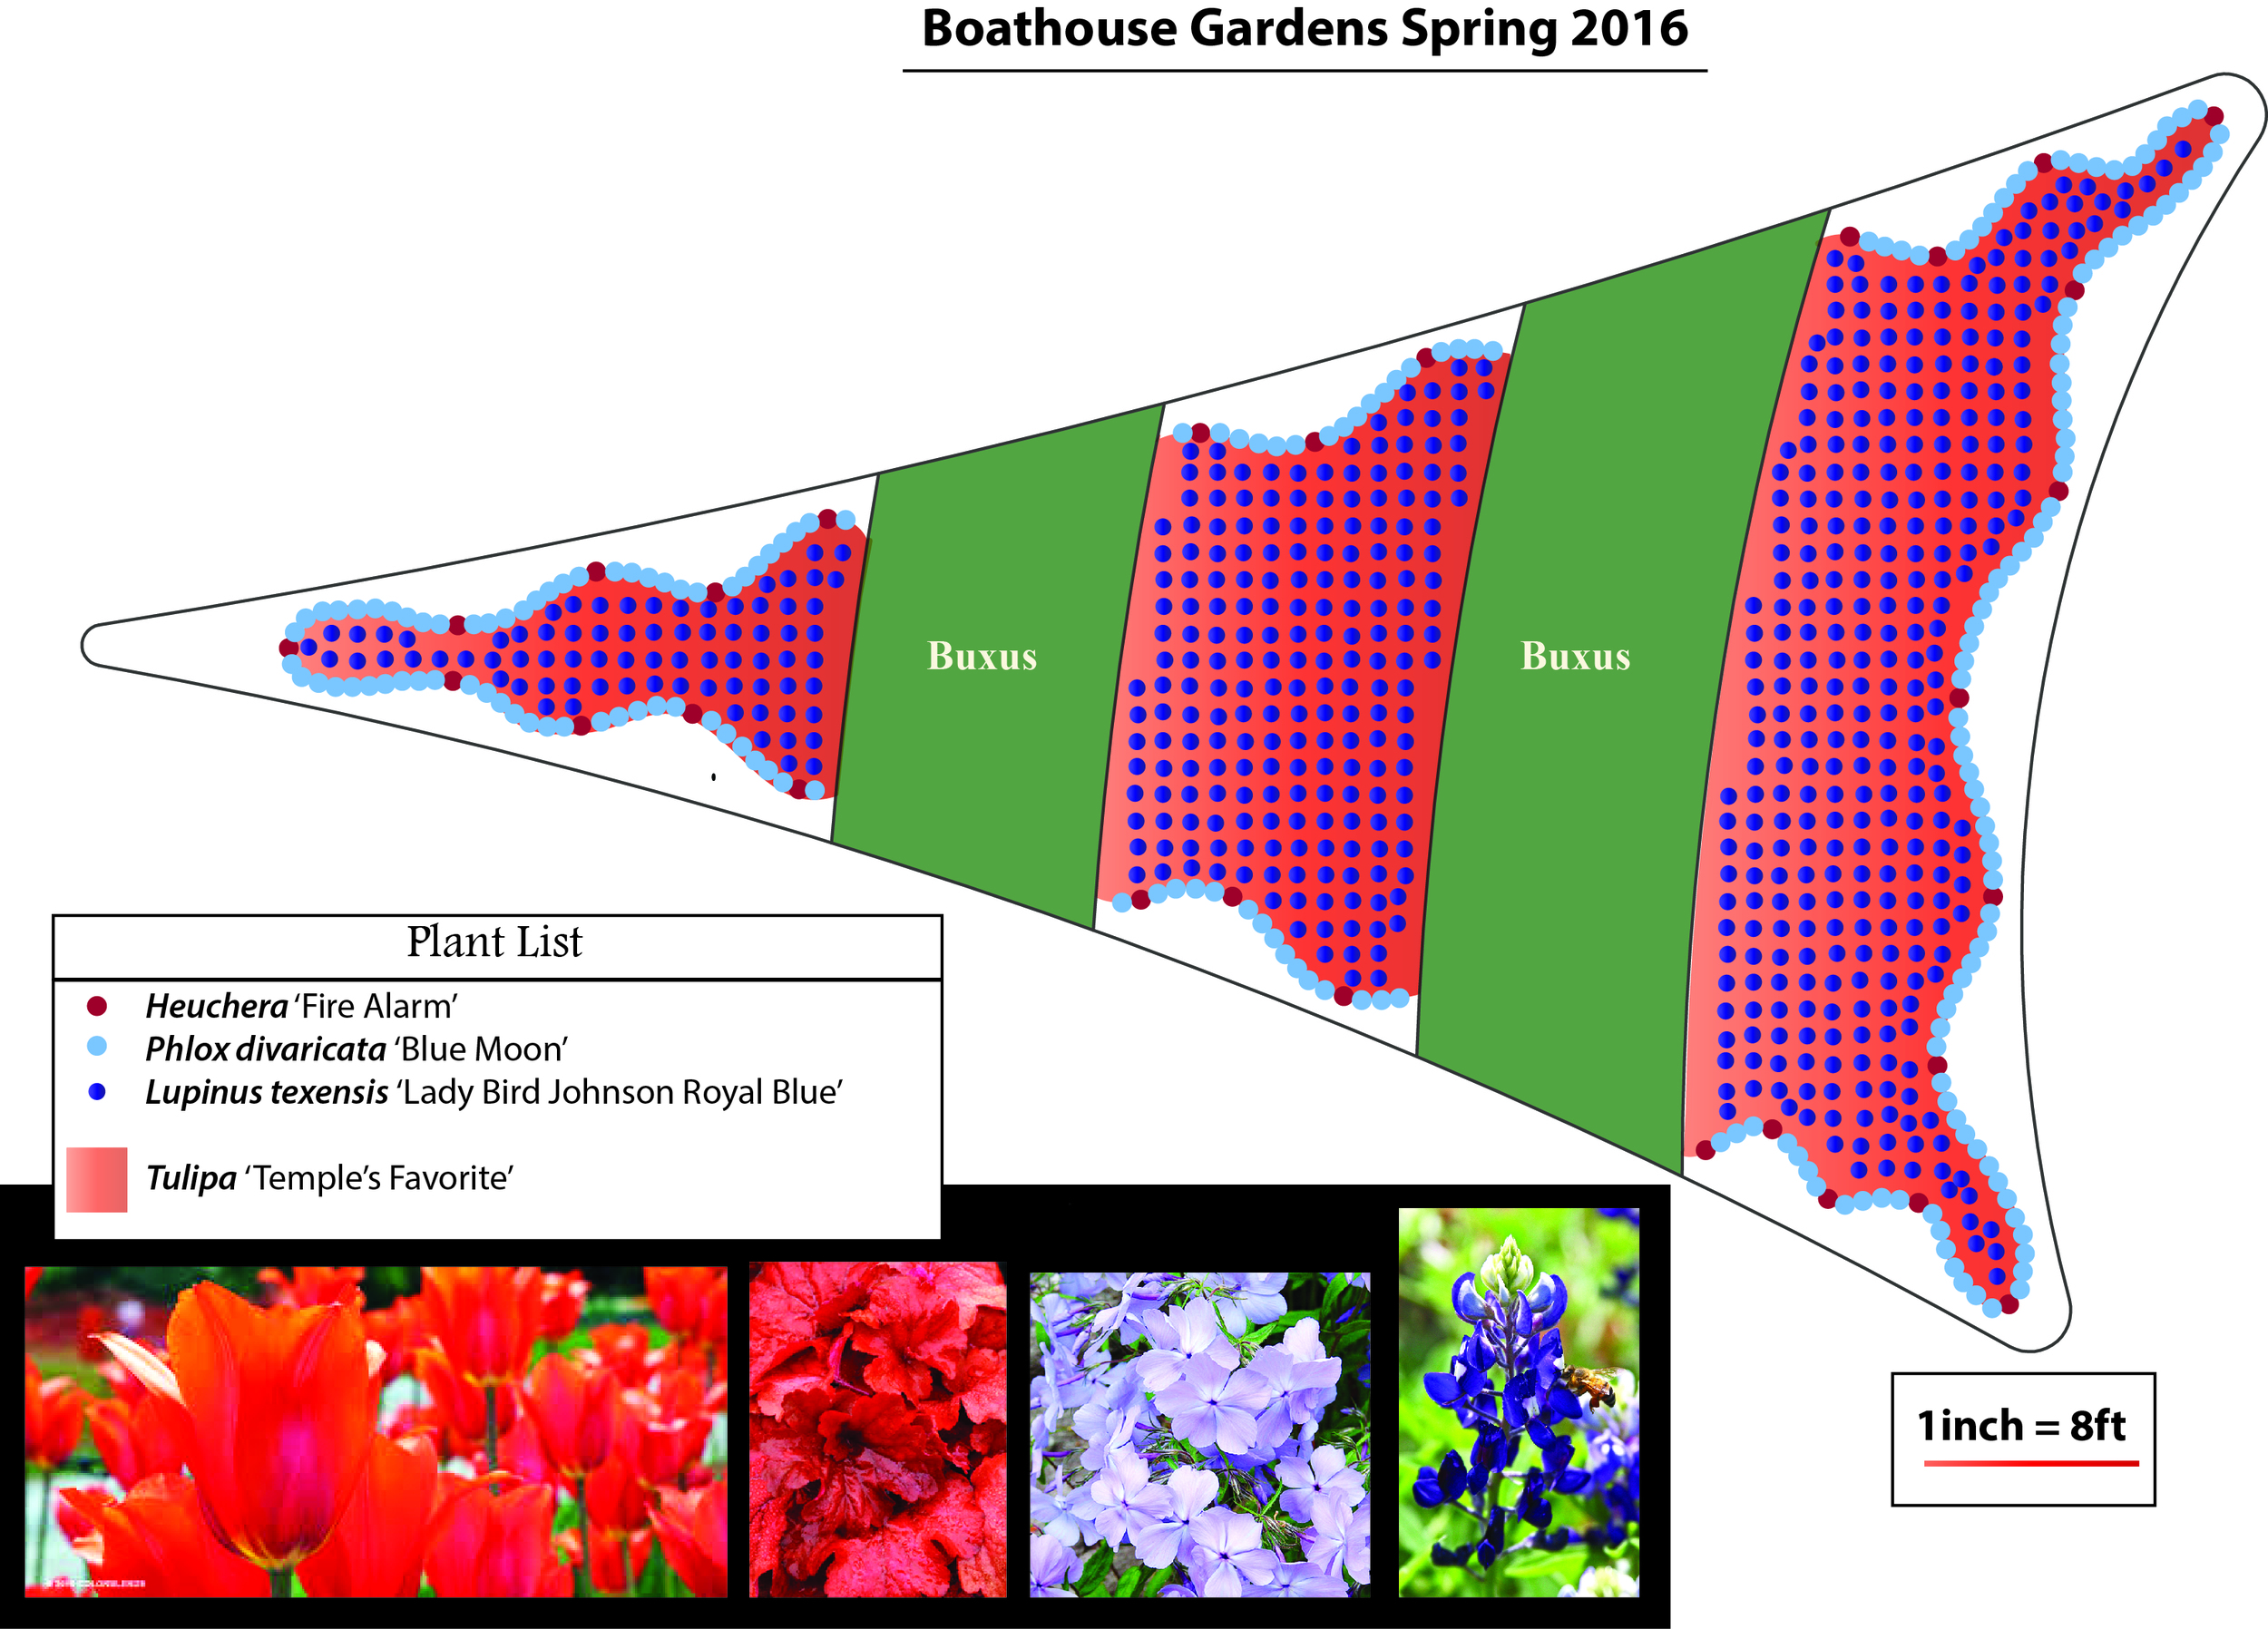 A mock-up of the proposed spring 2016 display